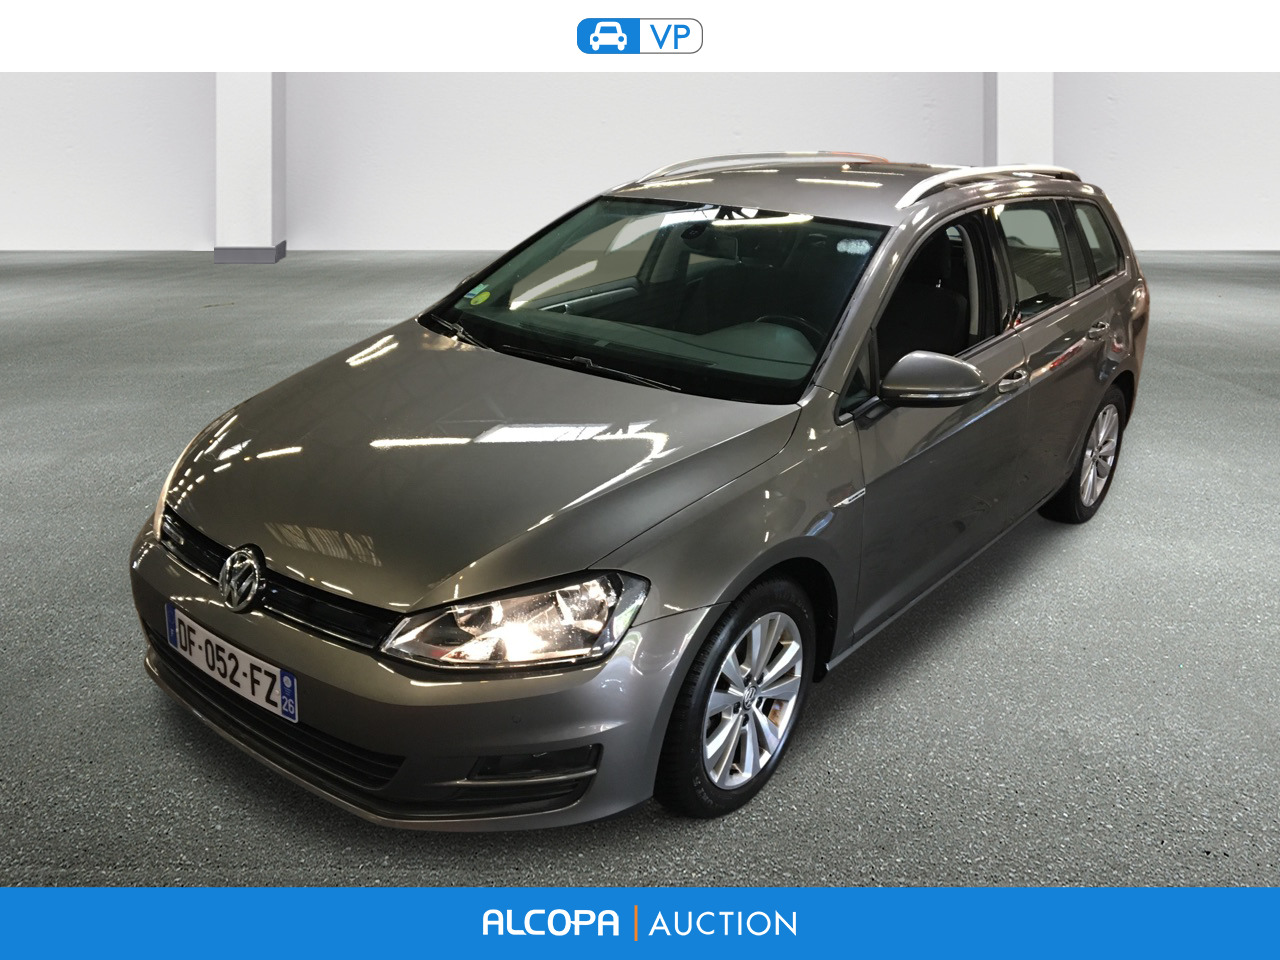 volkswagen golf golf 1 6 tdi 110ch bluemotion fap confortline business 5p nancy alcopa auction. Black Bedroom Furniture Sets. Home Design Ideas